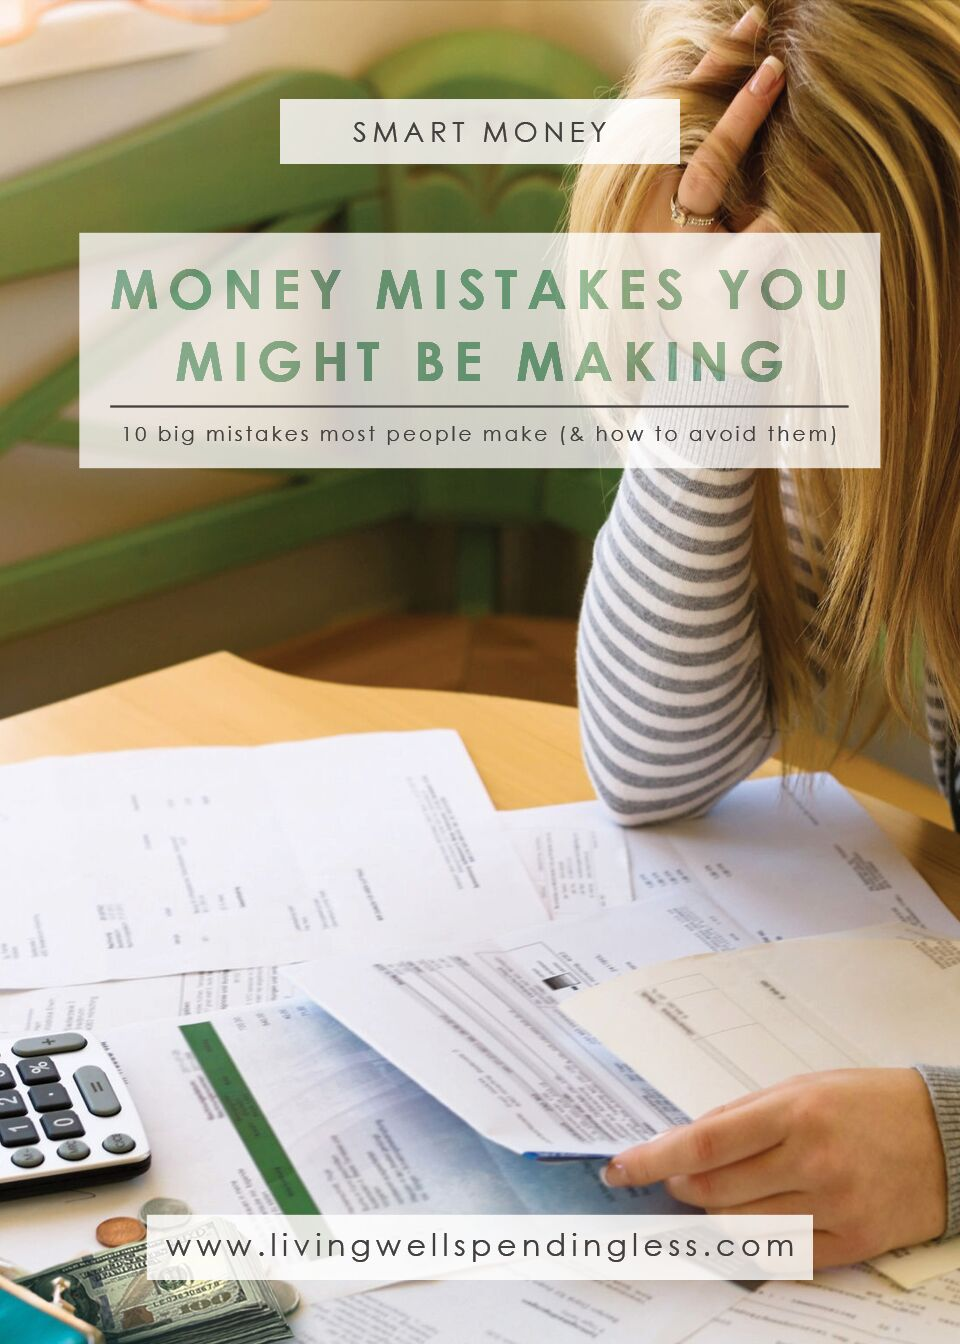 BIG Money Mistakes | Saving Tips | Money Management | Budget Hacks | Financial Freedom | Money Blunders | Common Money Mistakes